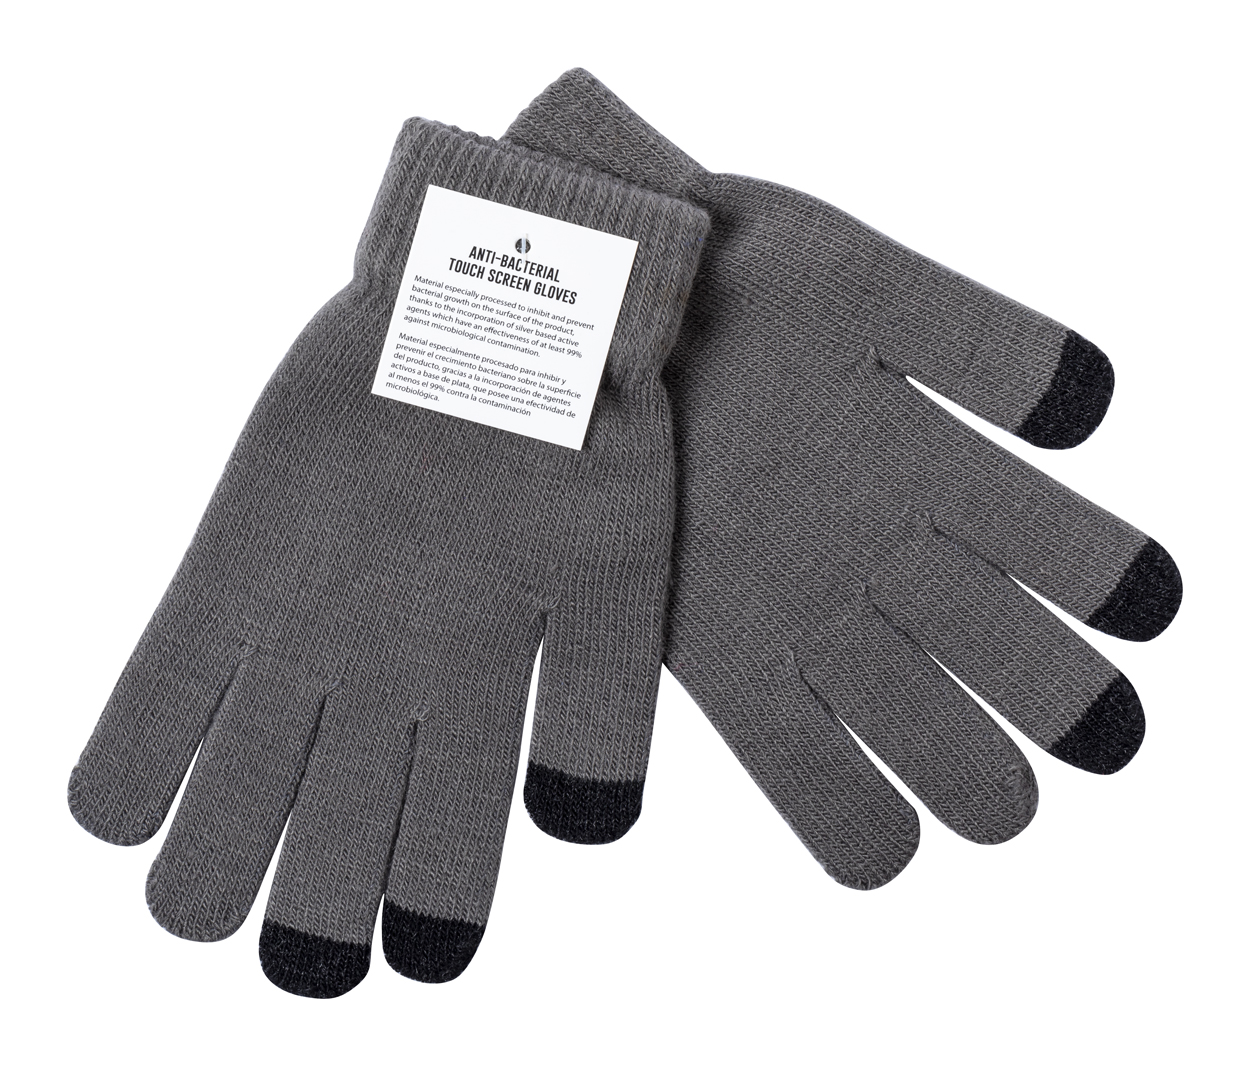 Tenex anti-bacterial touch screen gloves